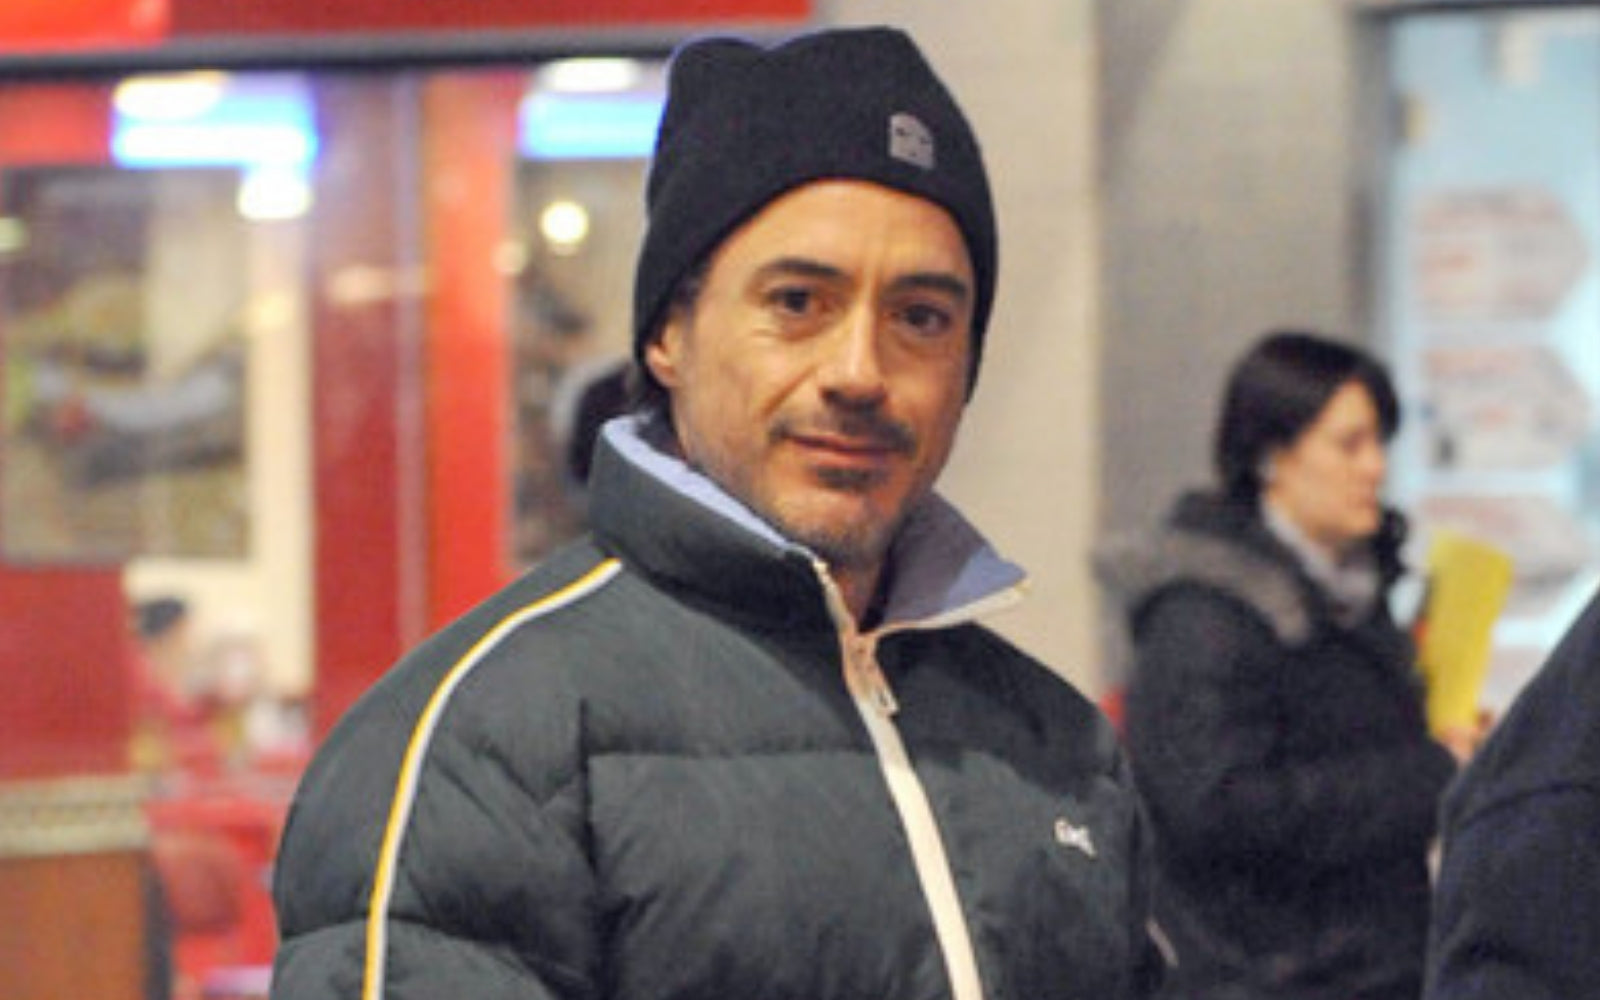 Robert Downey Jr Beanie - Get This Look - Mens Beanie